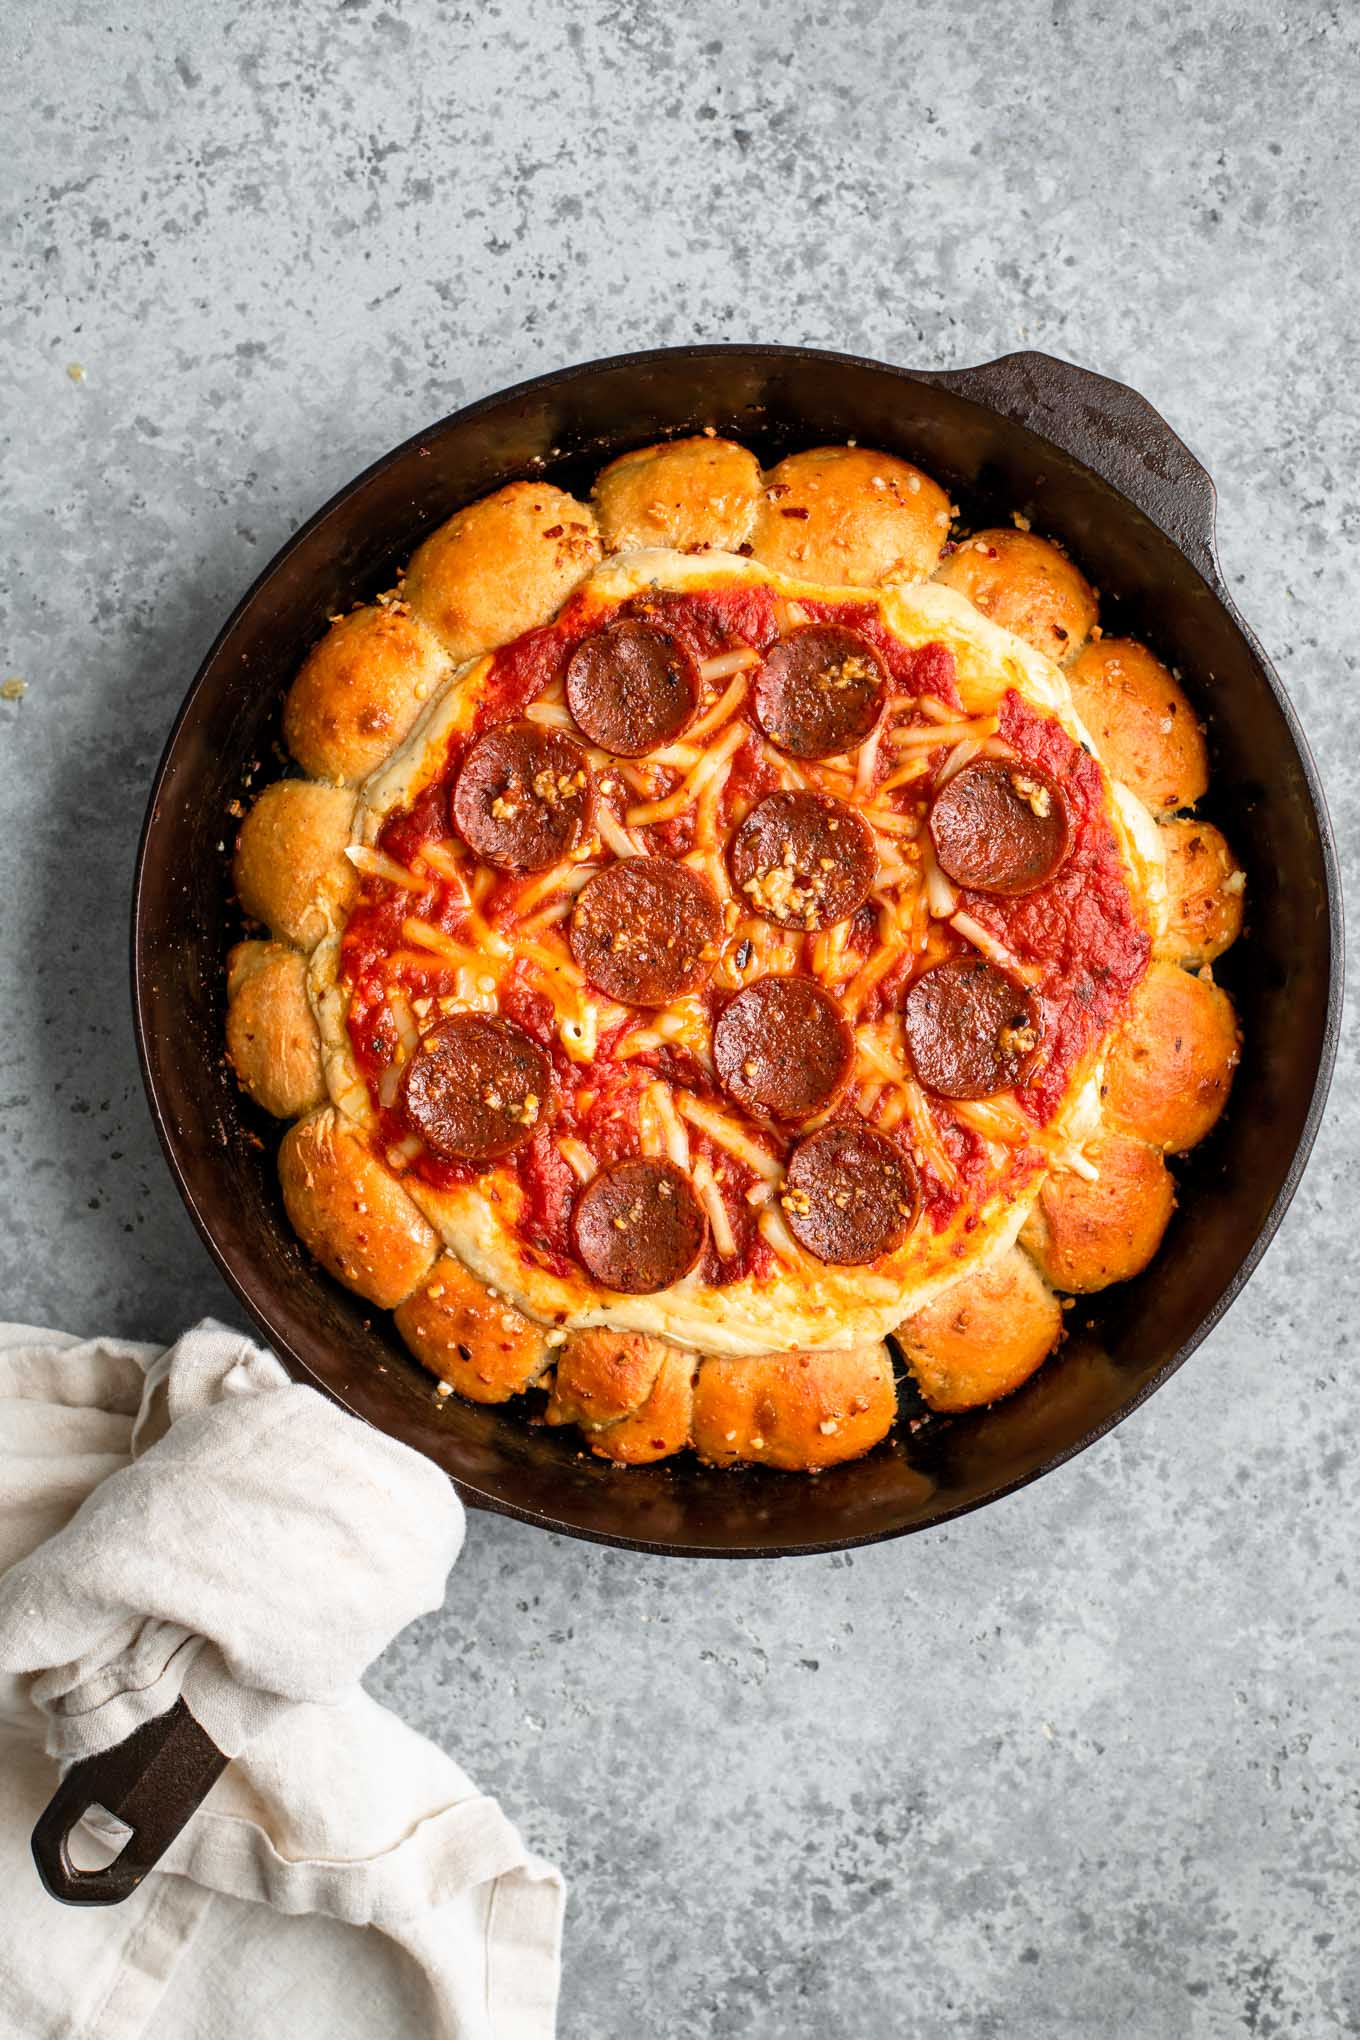 vegan skillet pizza dip served in cast iron skillet with tan linen wrapped around handle